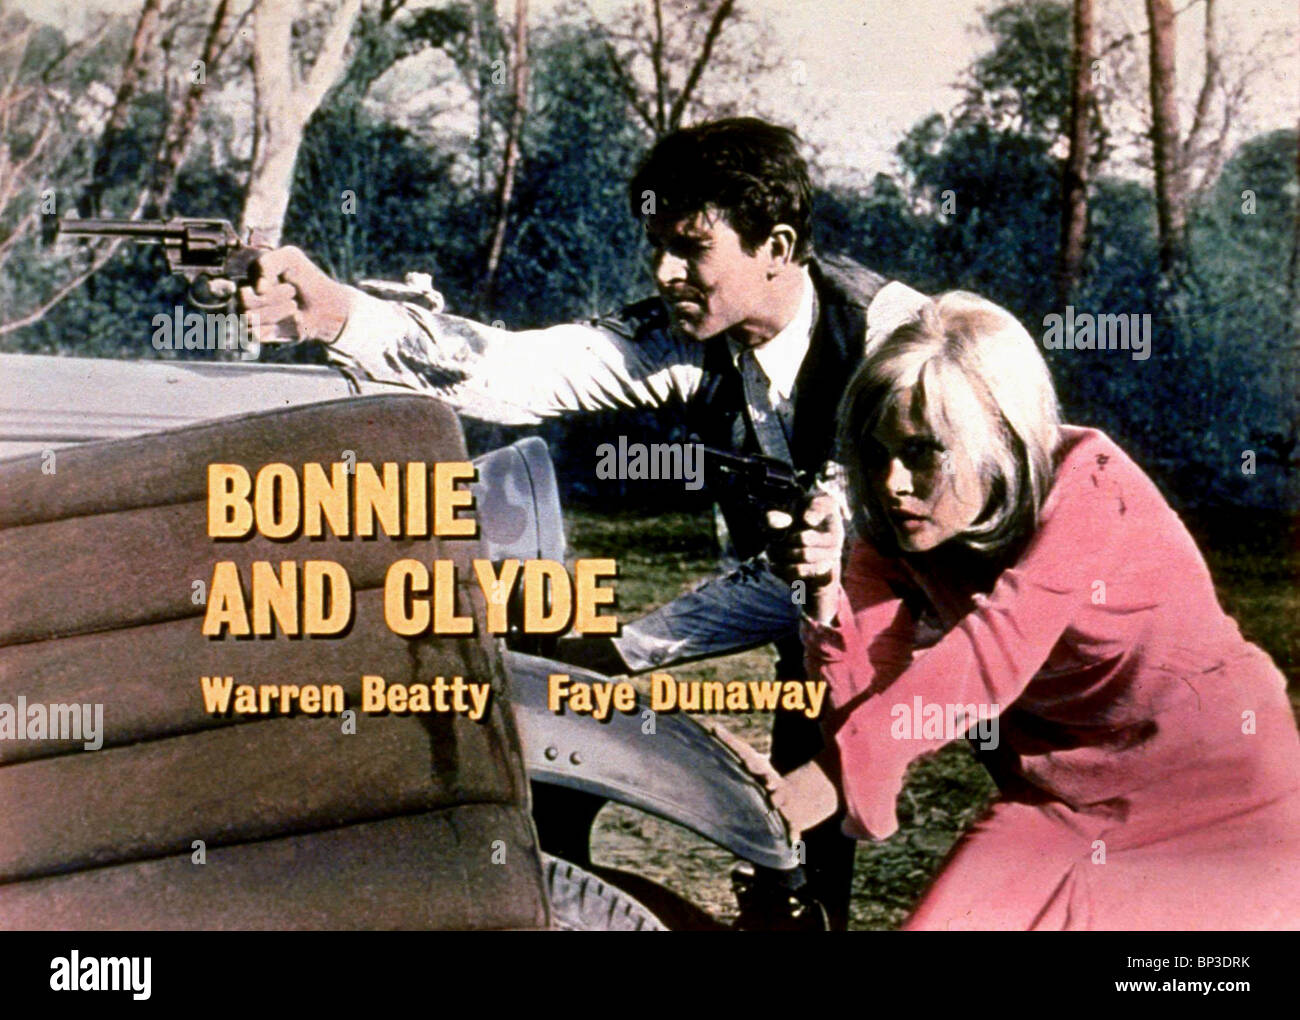 bonnie and clyde 1967 download